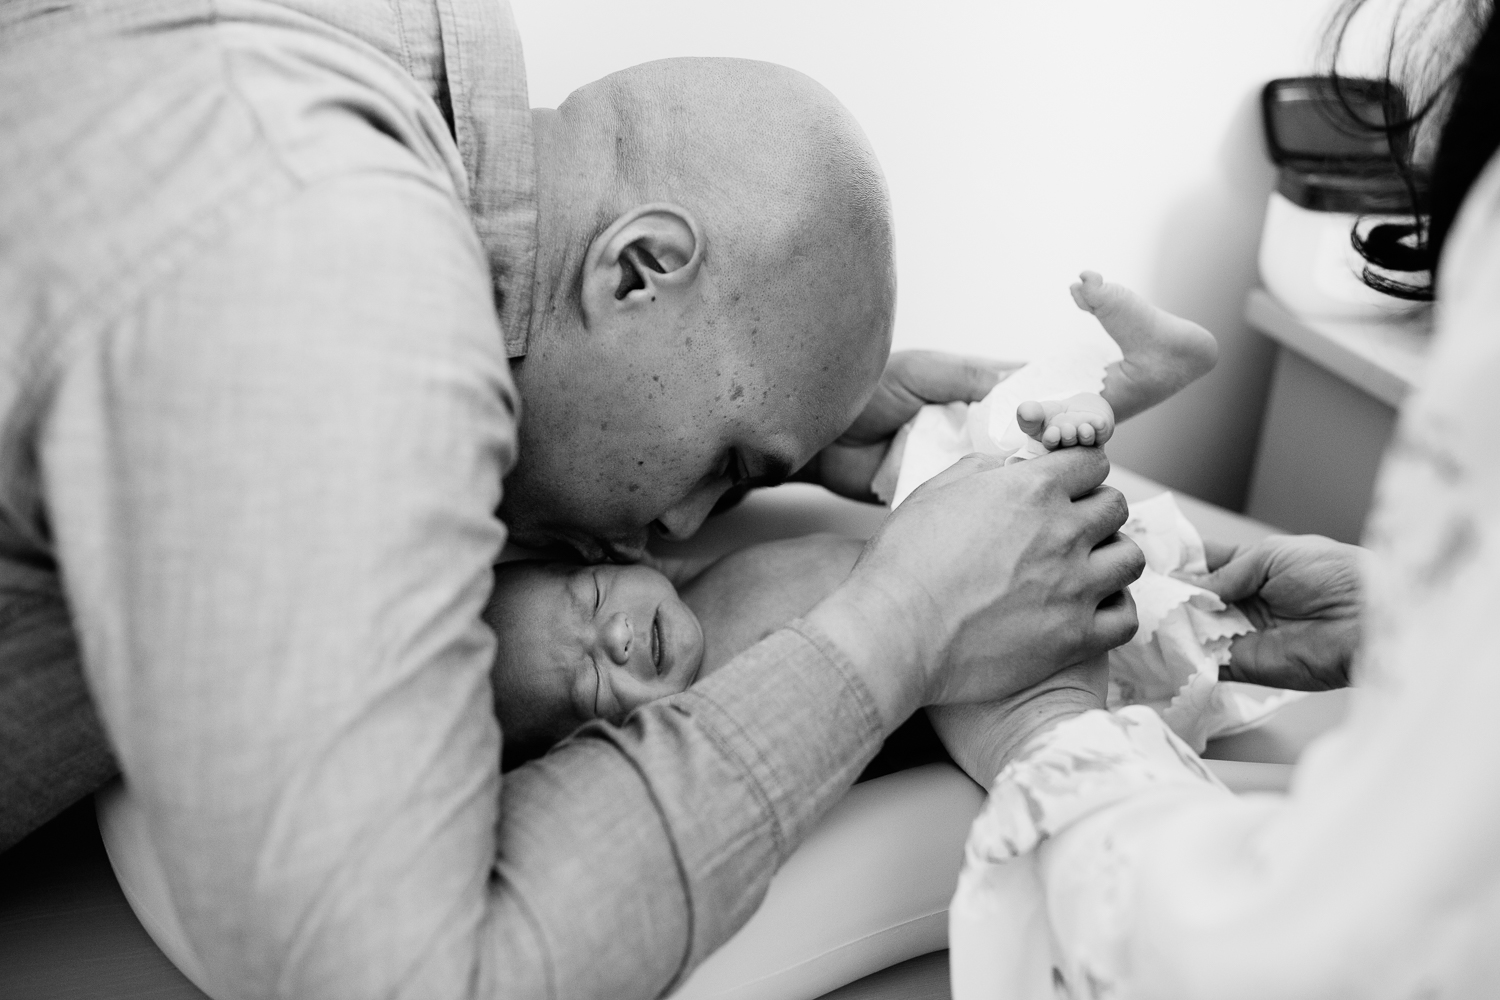 new dad kissing 3 week old baby boy's cheek as he cries getting diaper changed by mom - Barrie In-Home Photography